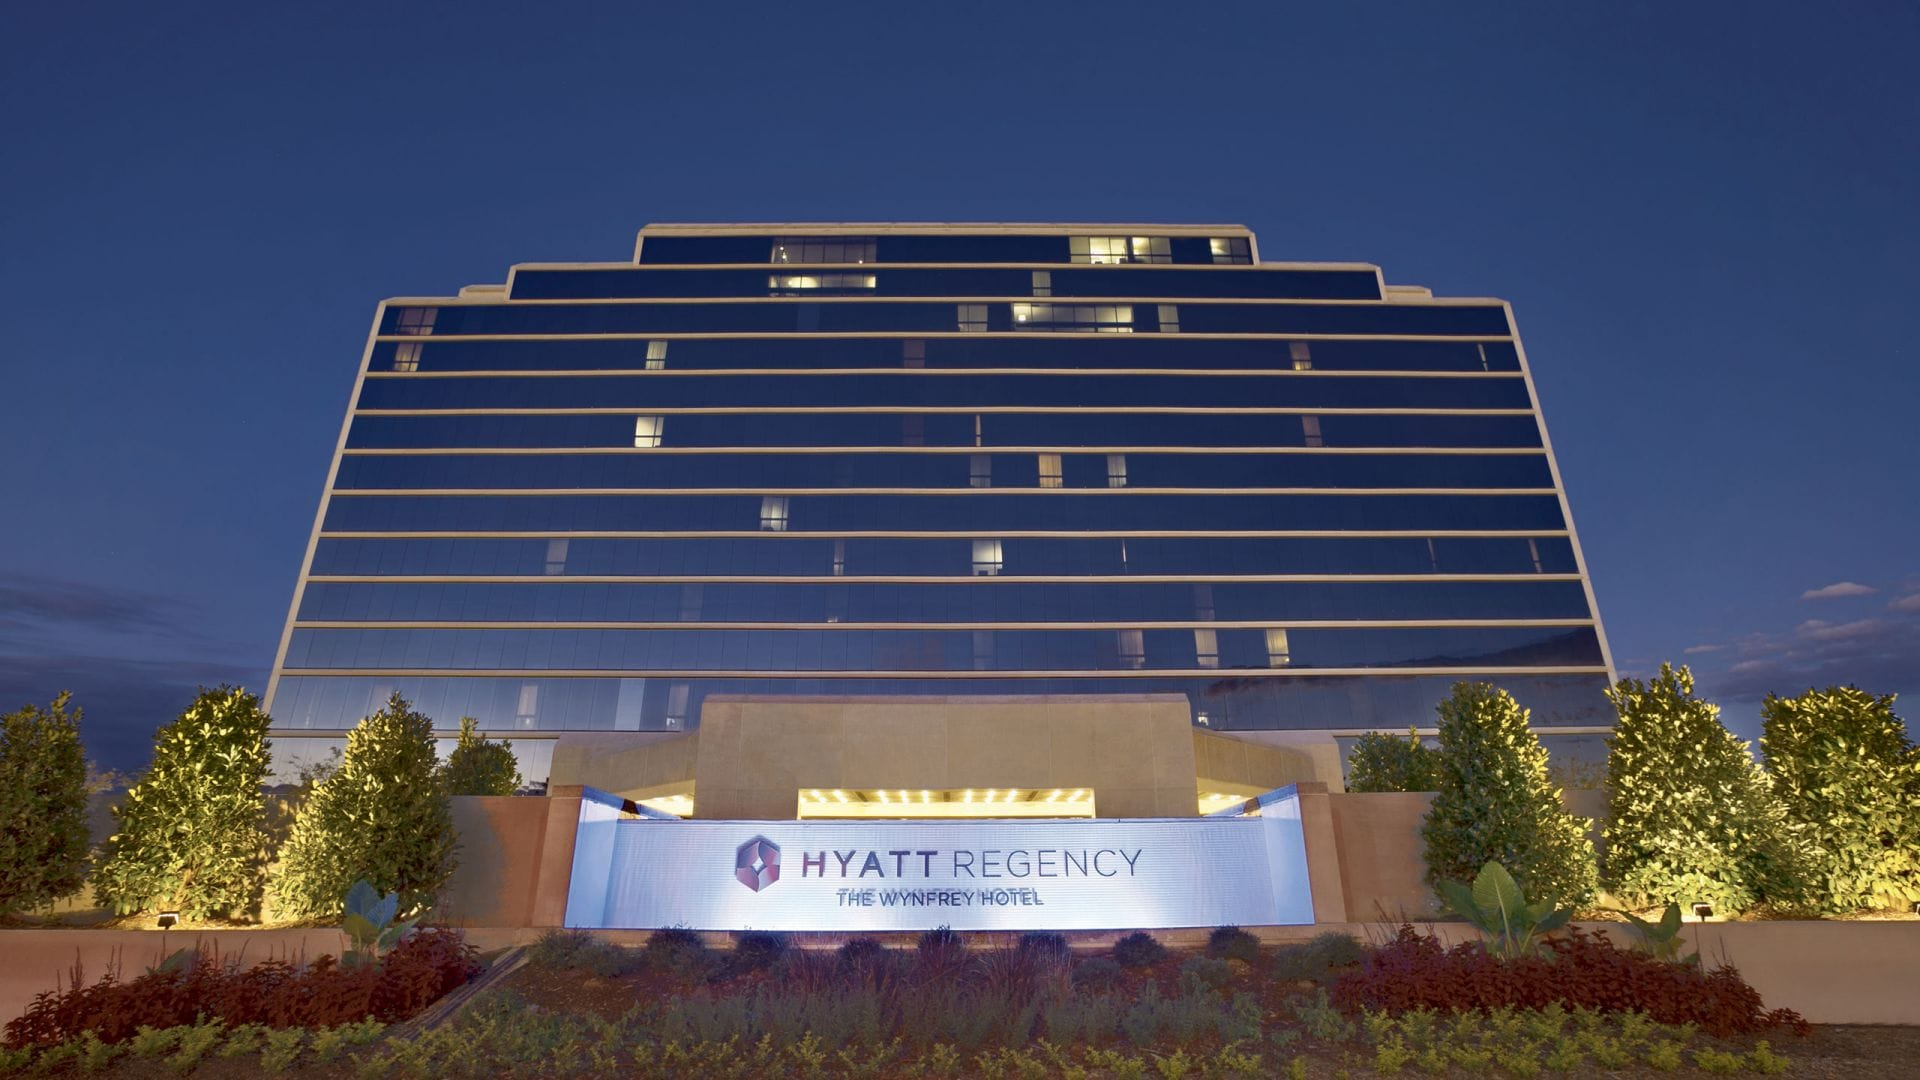 Hyatt Regency Birmingham The Wynfrey Hotel Exterior View